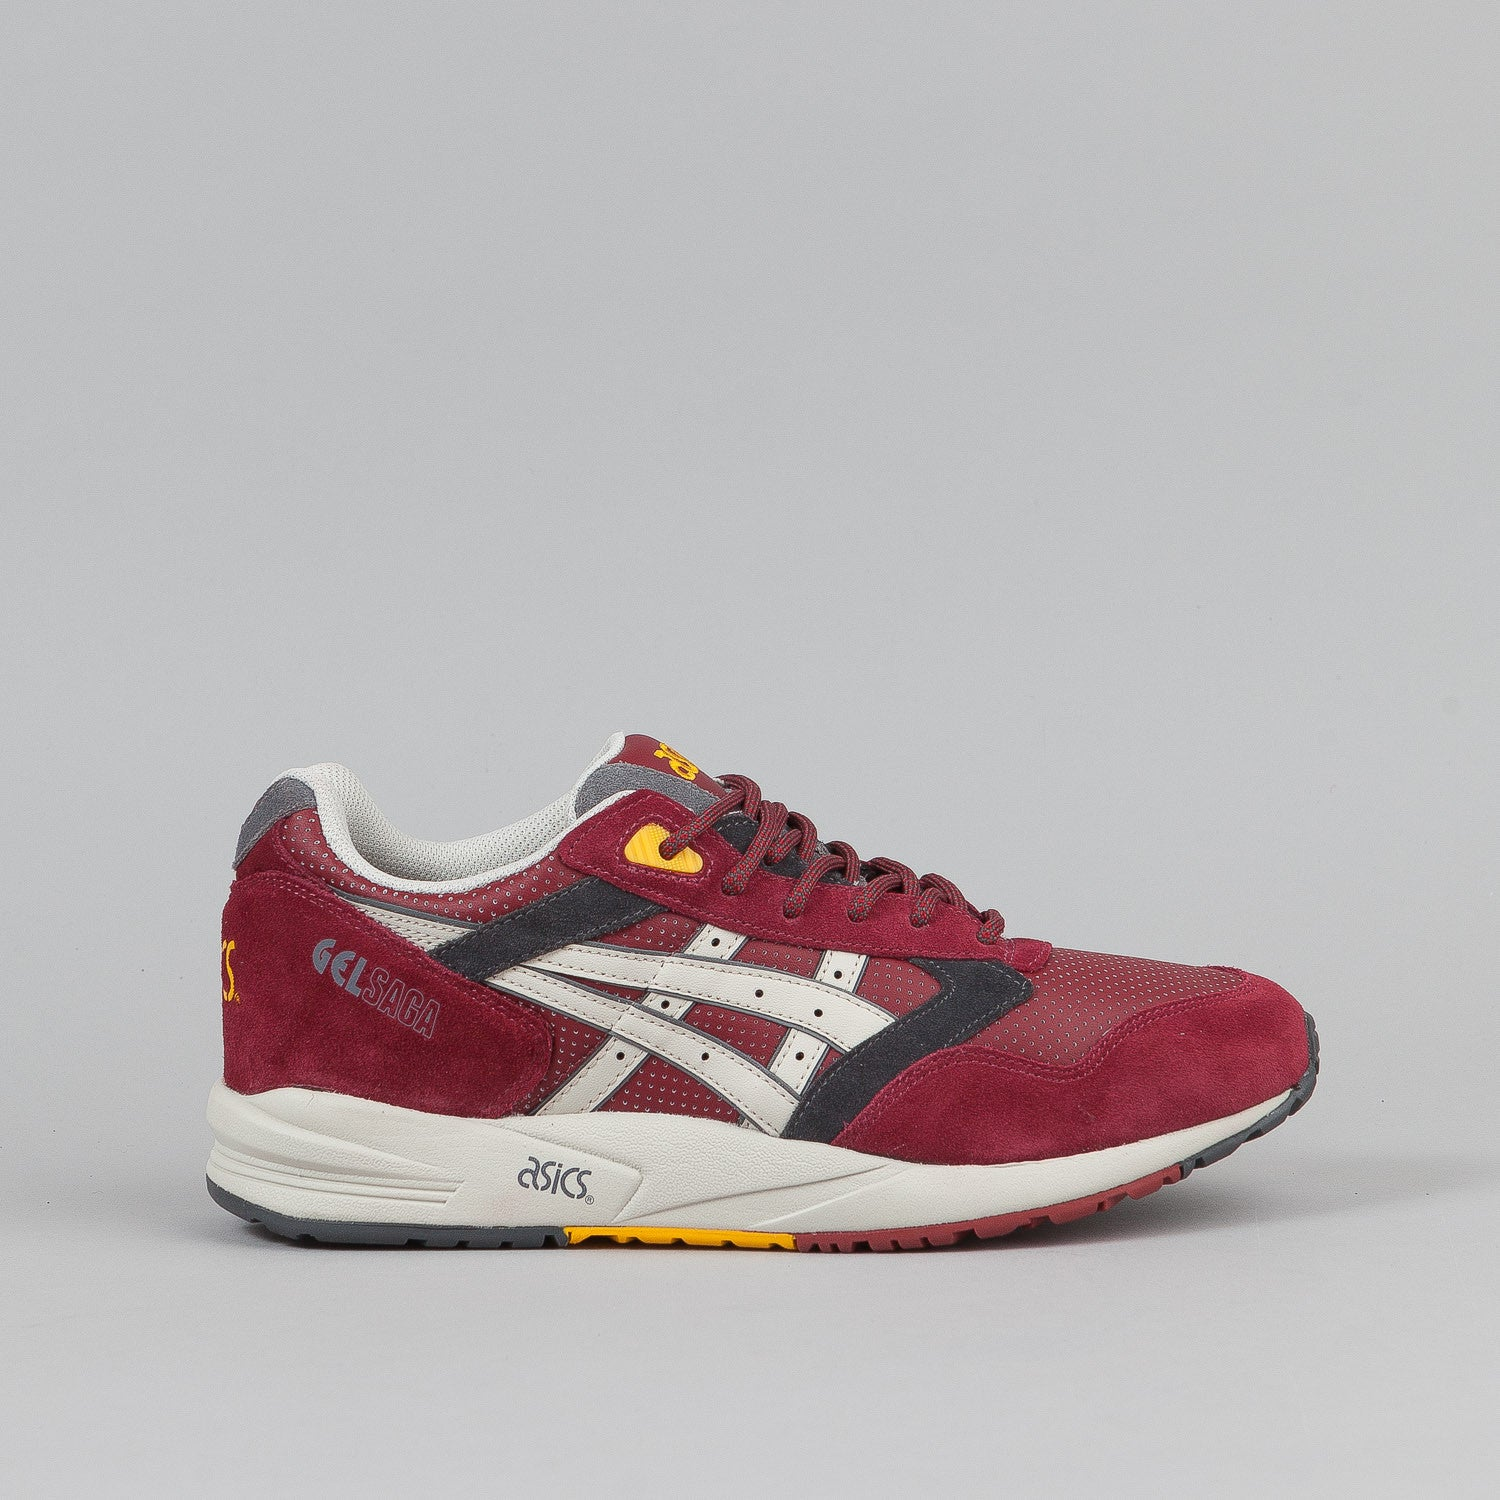 Asics Gel Saga Shoes 'Outdoor'